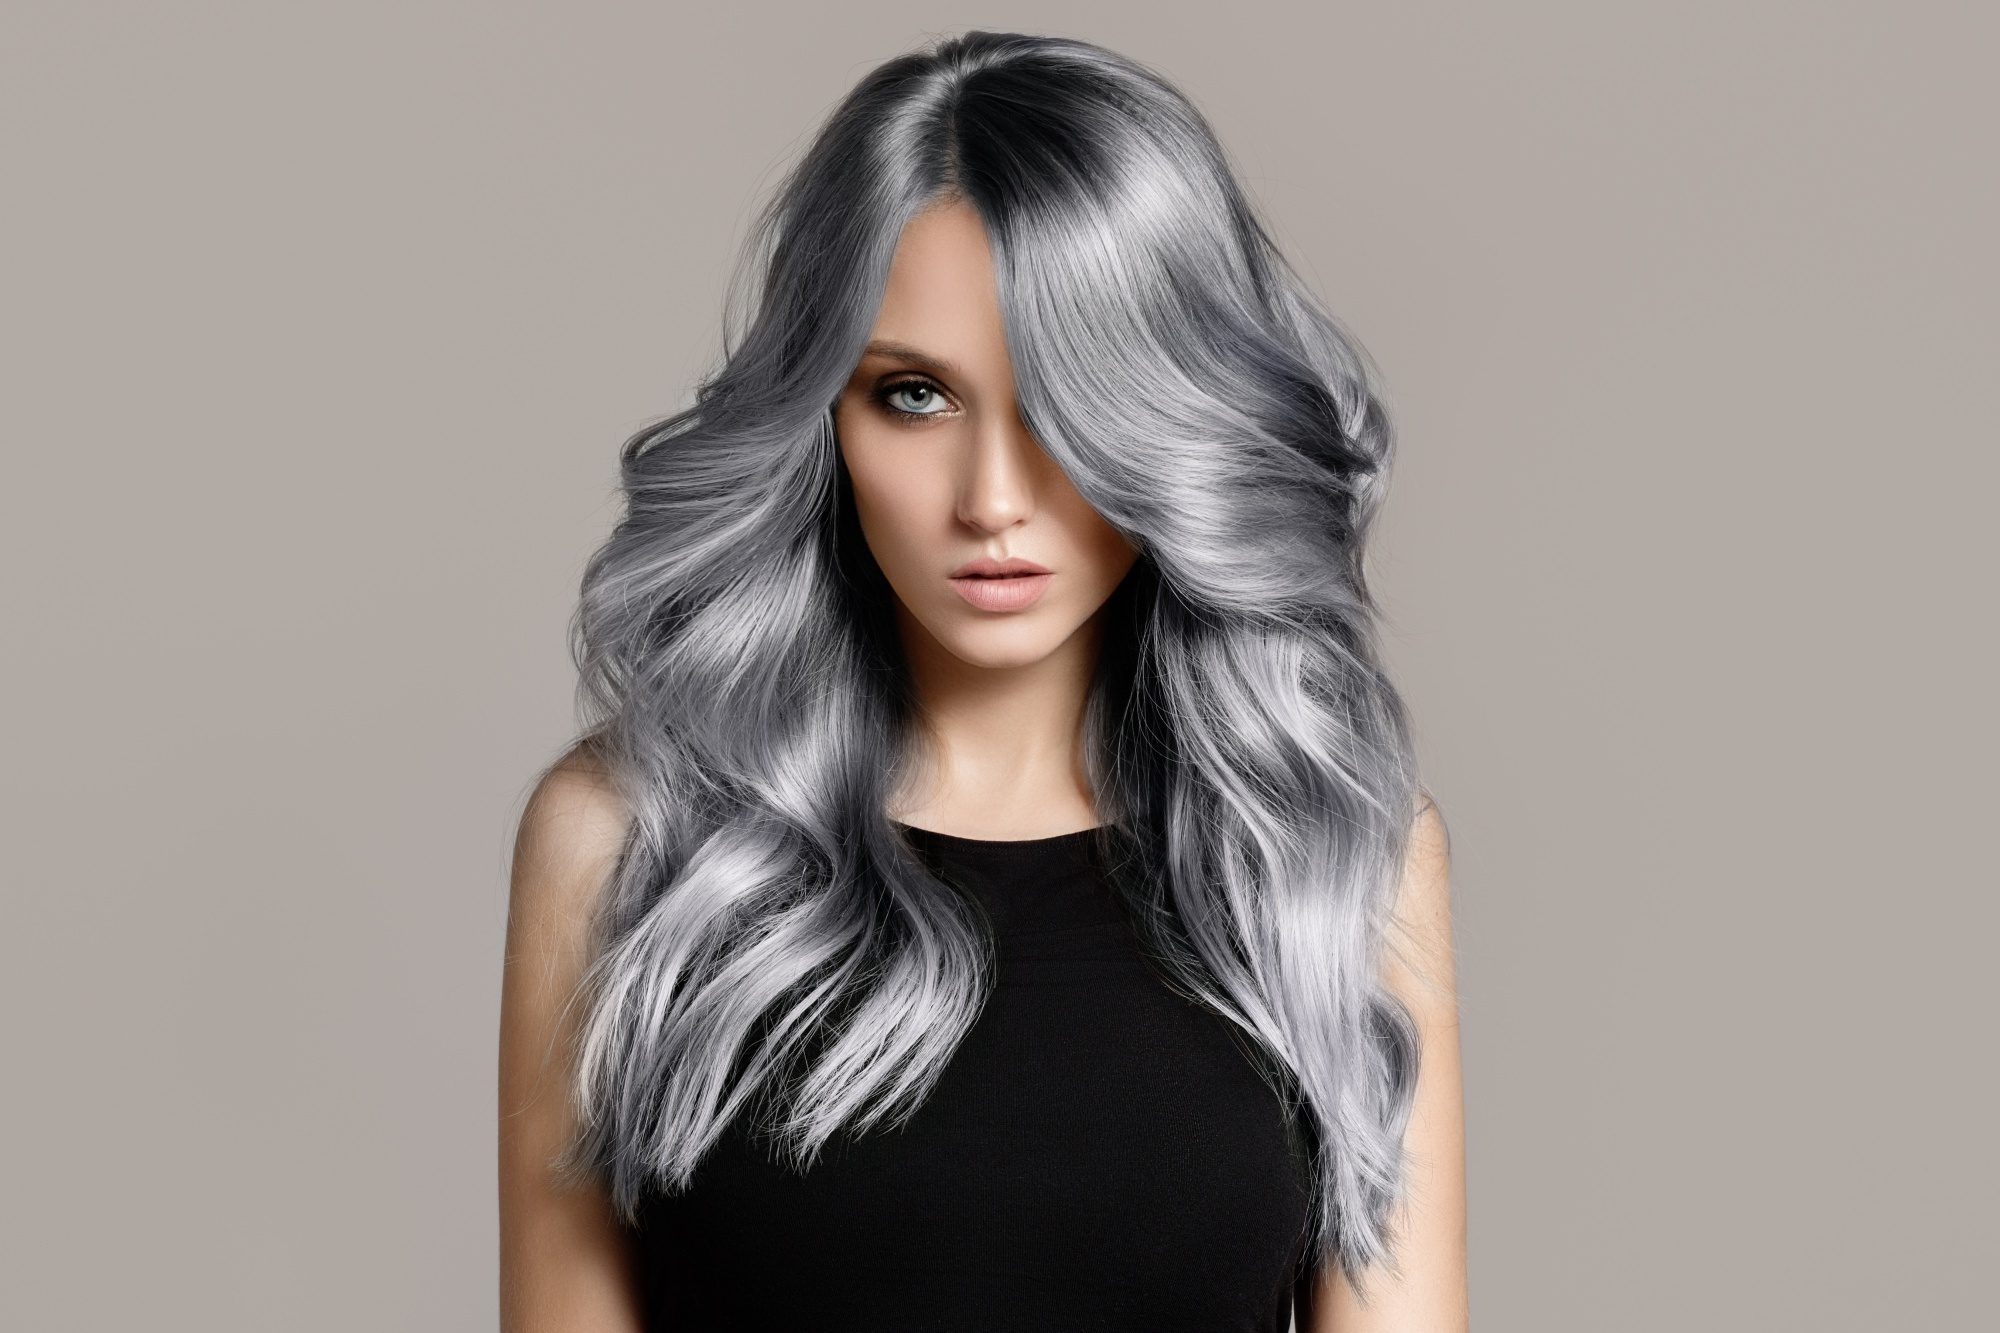 Ash hair color: Woman with long silver ash wavy hair wearing a black top